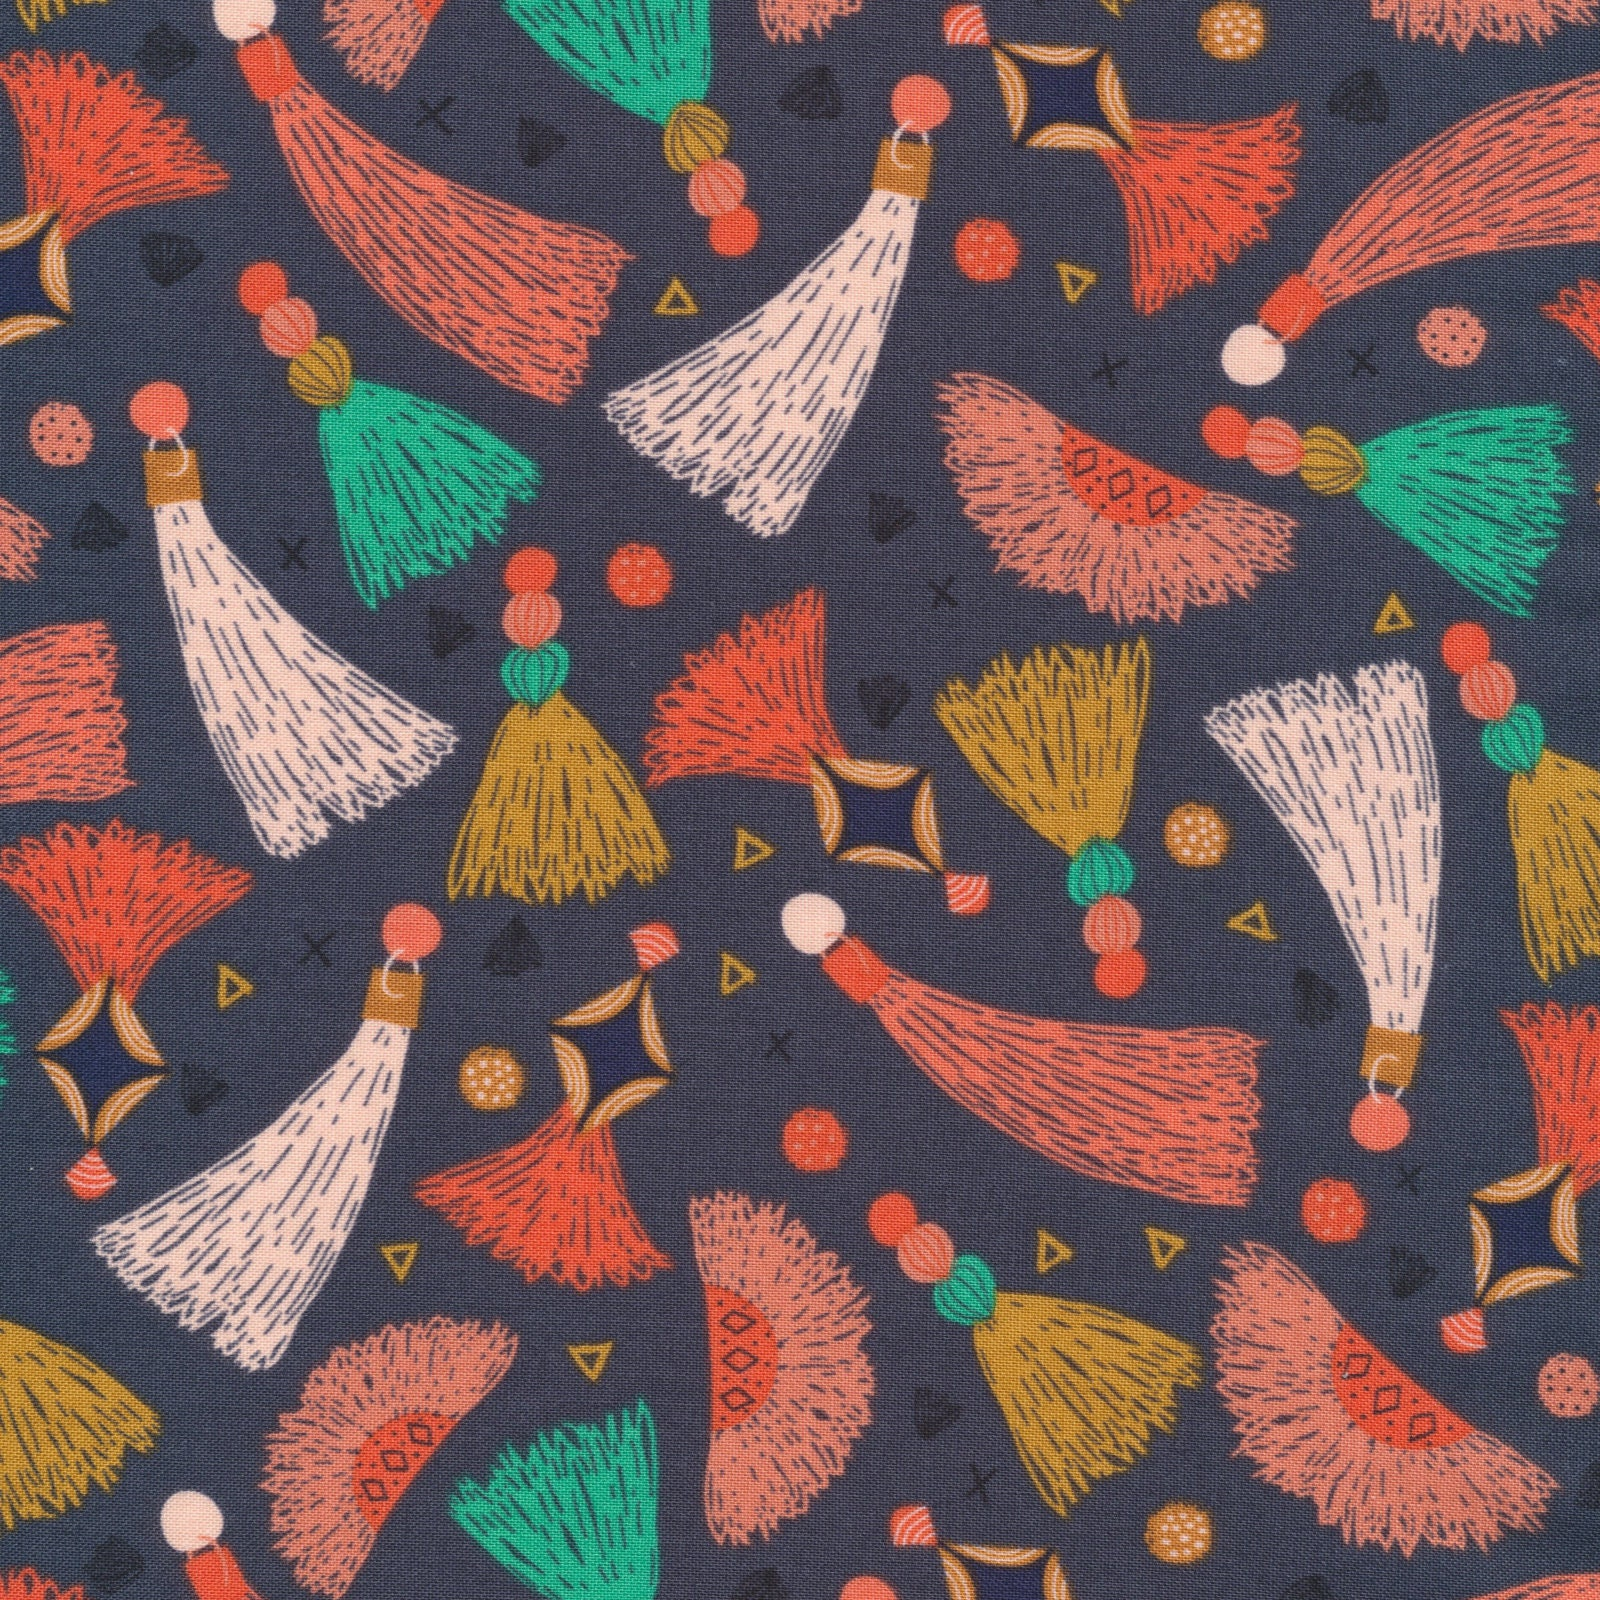 Cloud Nine Free UK Postage Modern Organic Cotton Organic Cotton Fabric /'Forest Jewels Dark Blooms /' Cloud9 Quilters Cotton